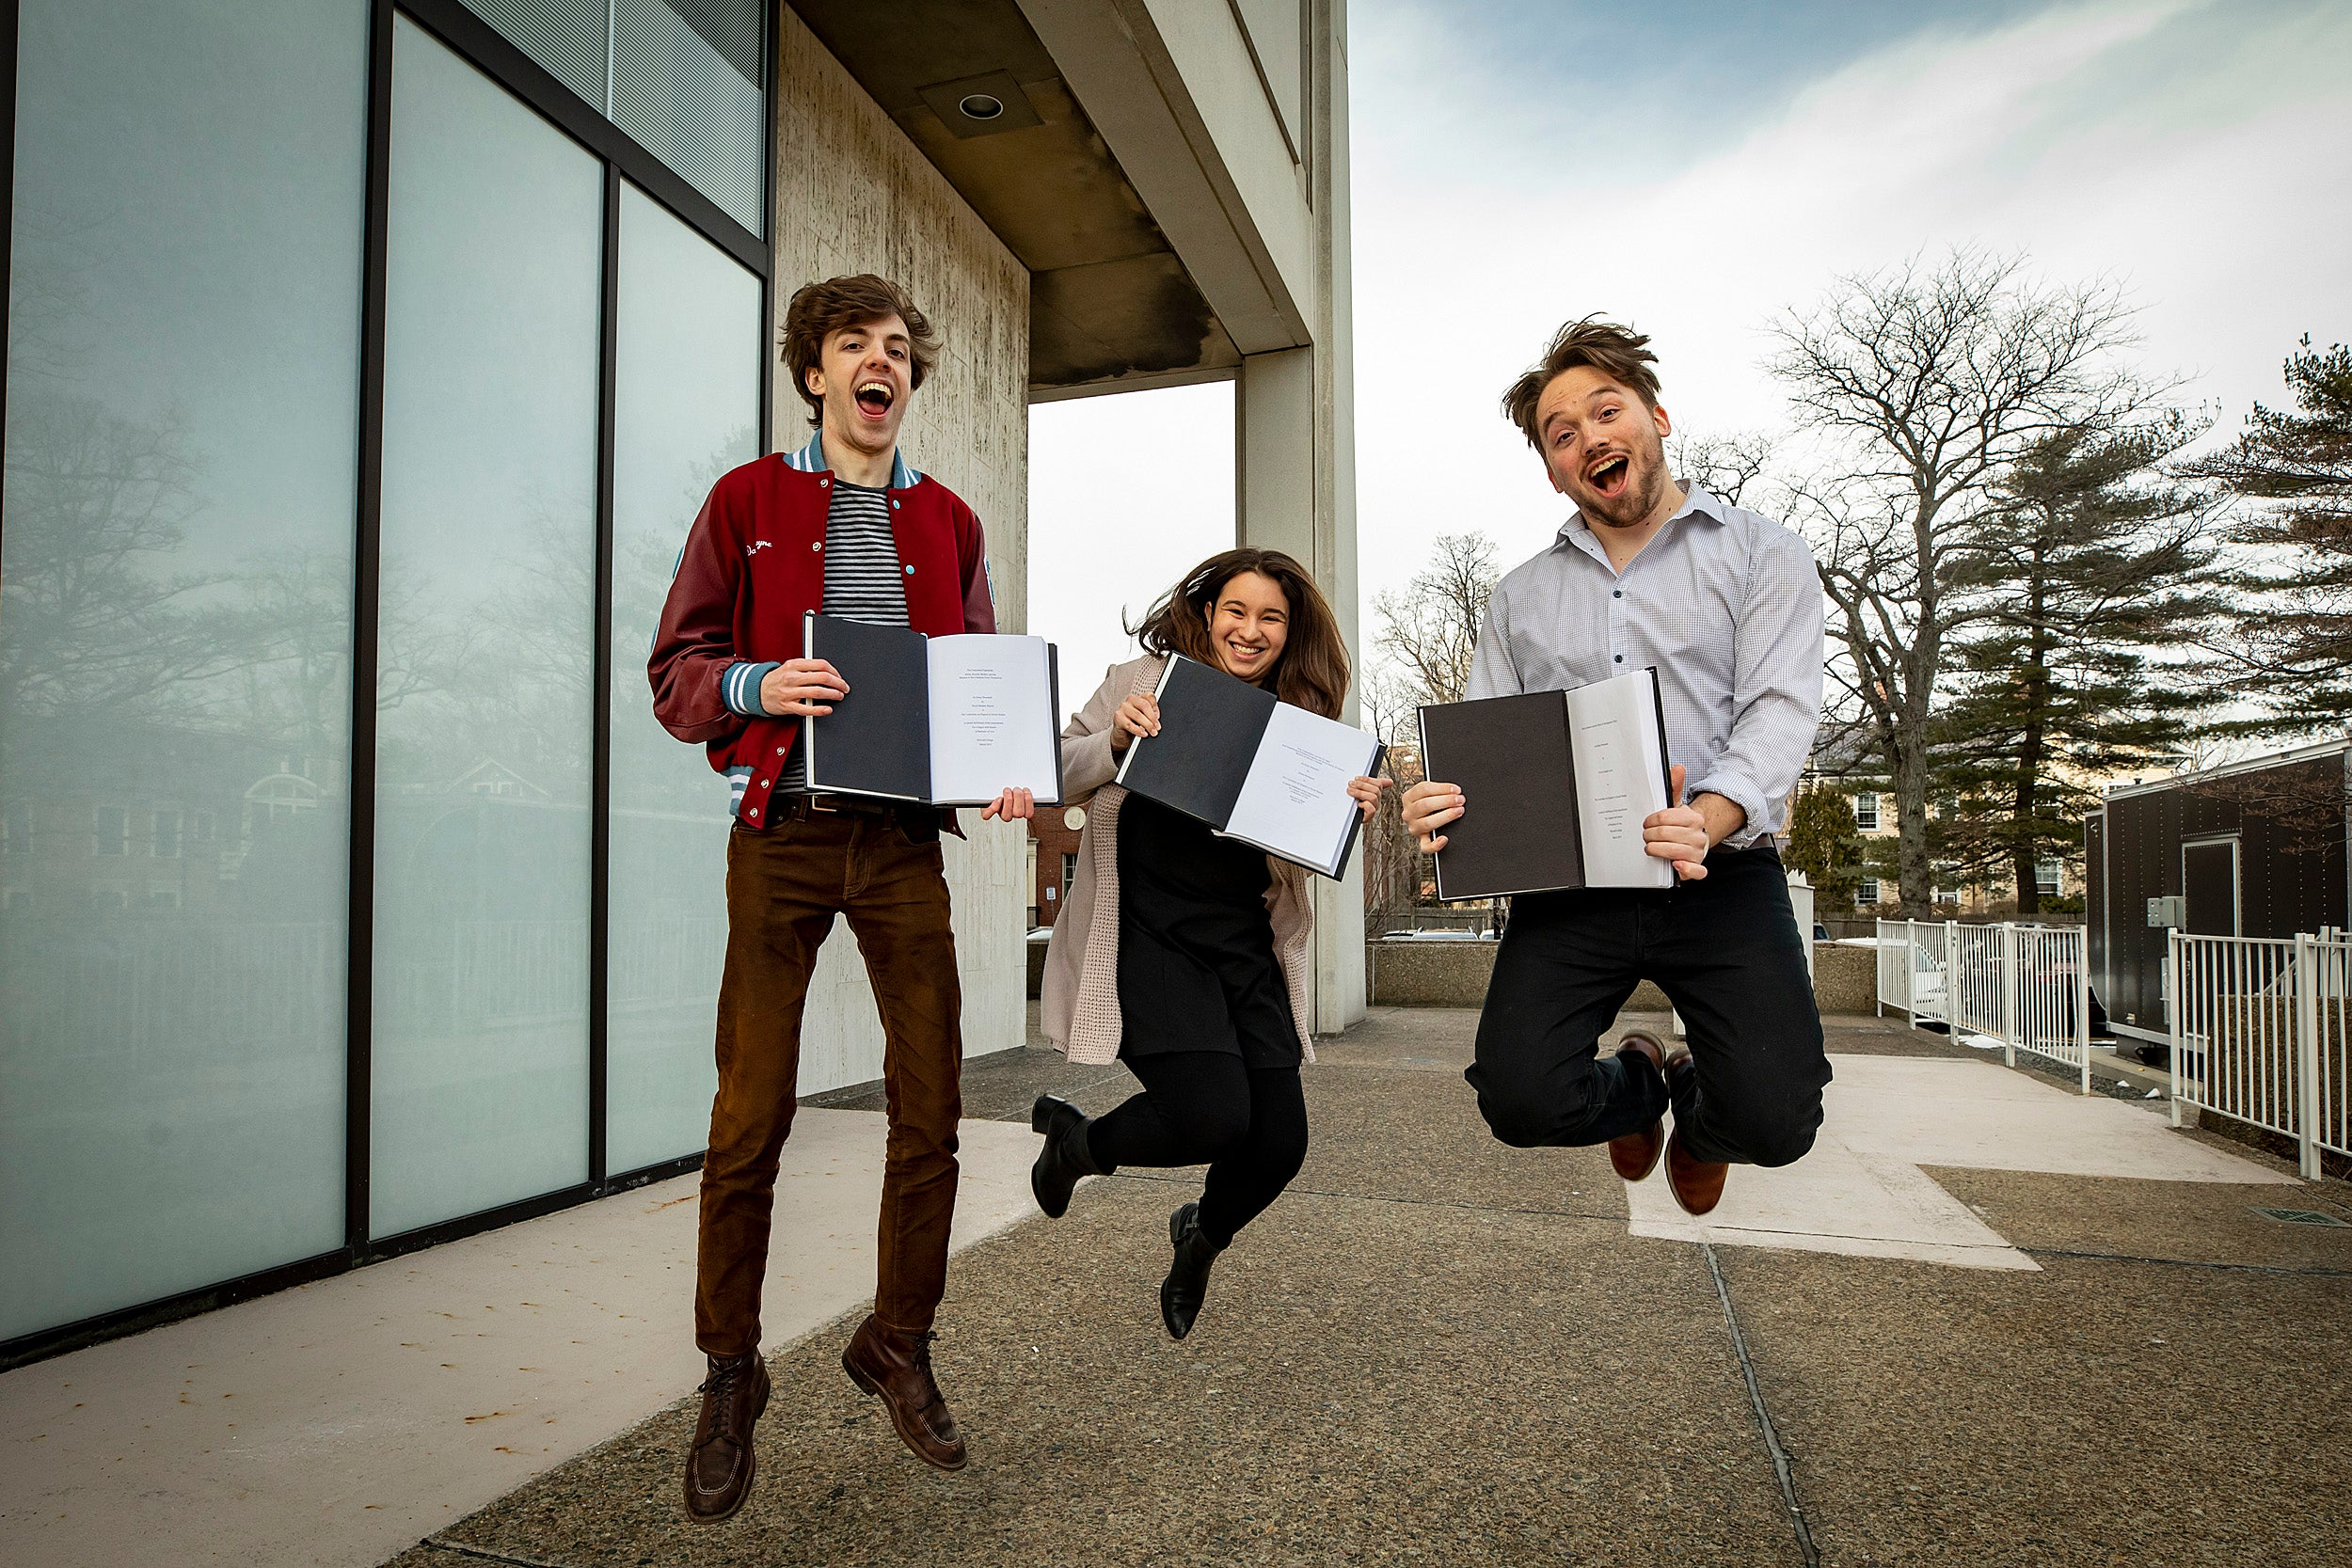 On thesis day Harvard students celebrate: It's finally finished